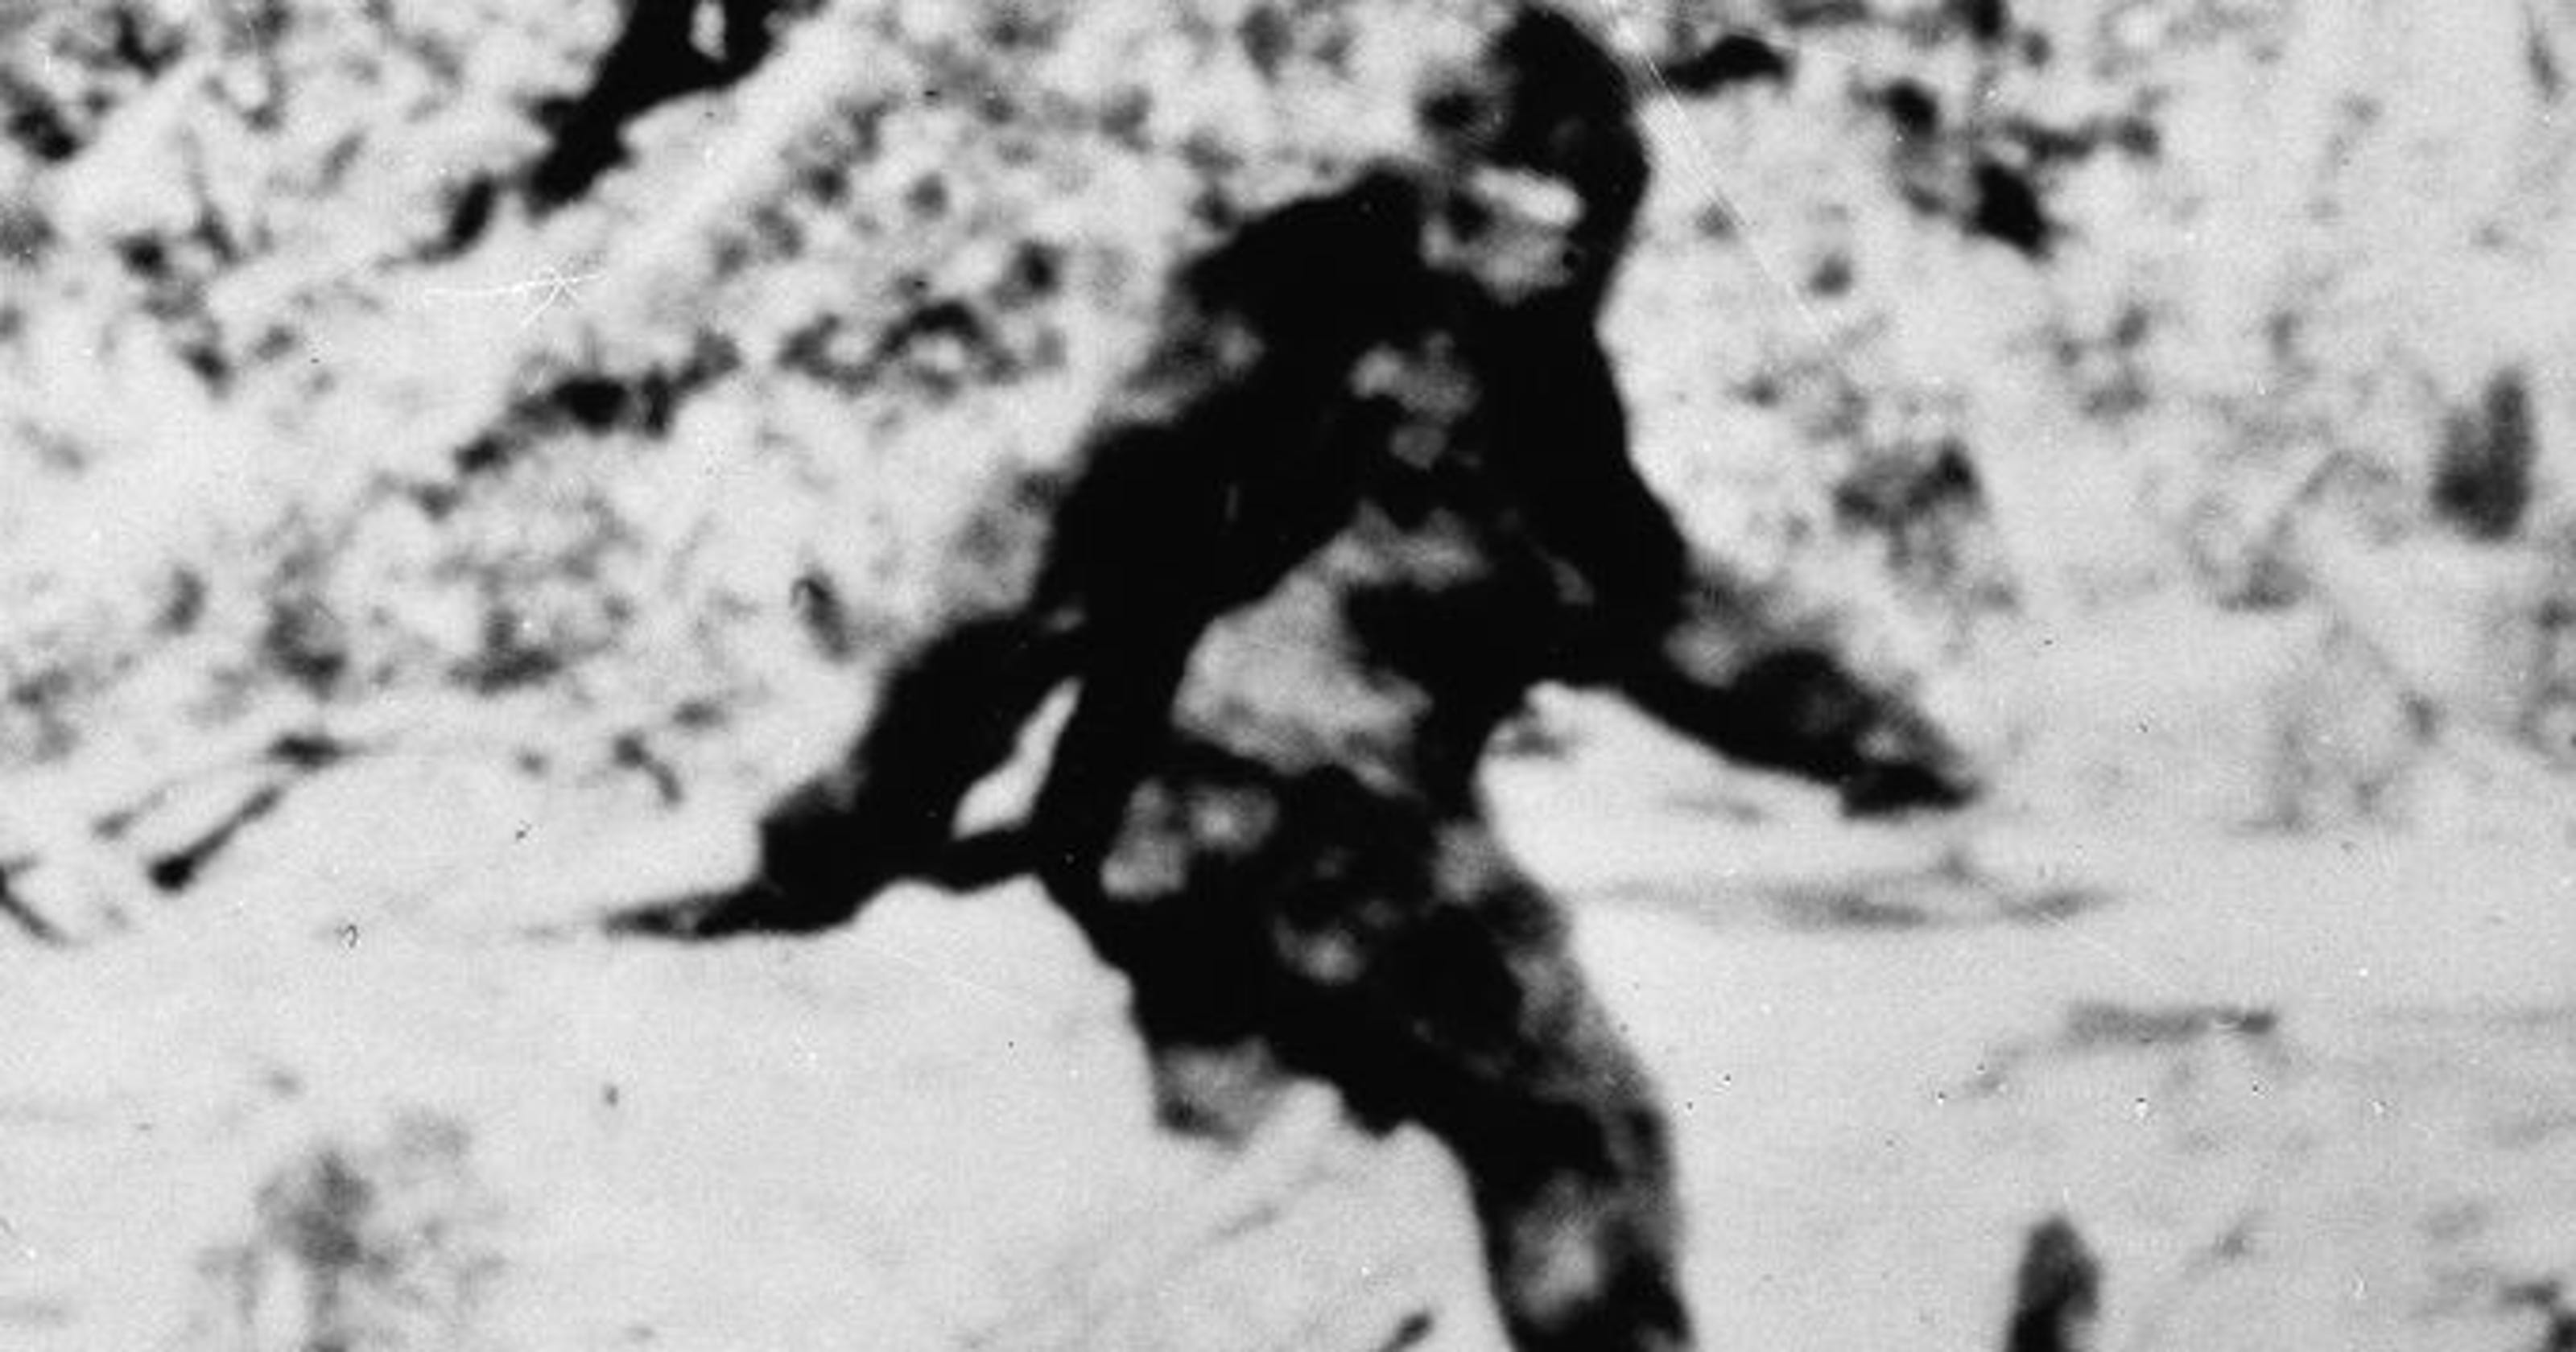 The Dogman and other Michigan mysteries